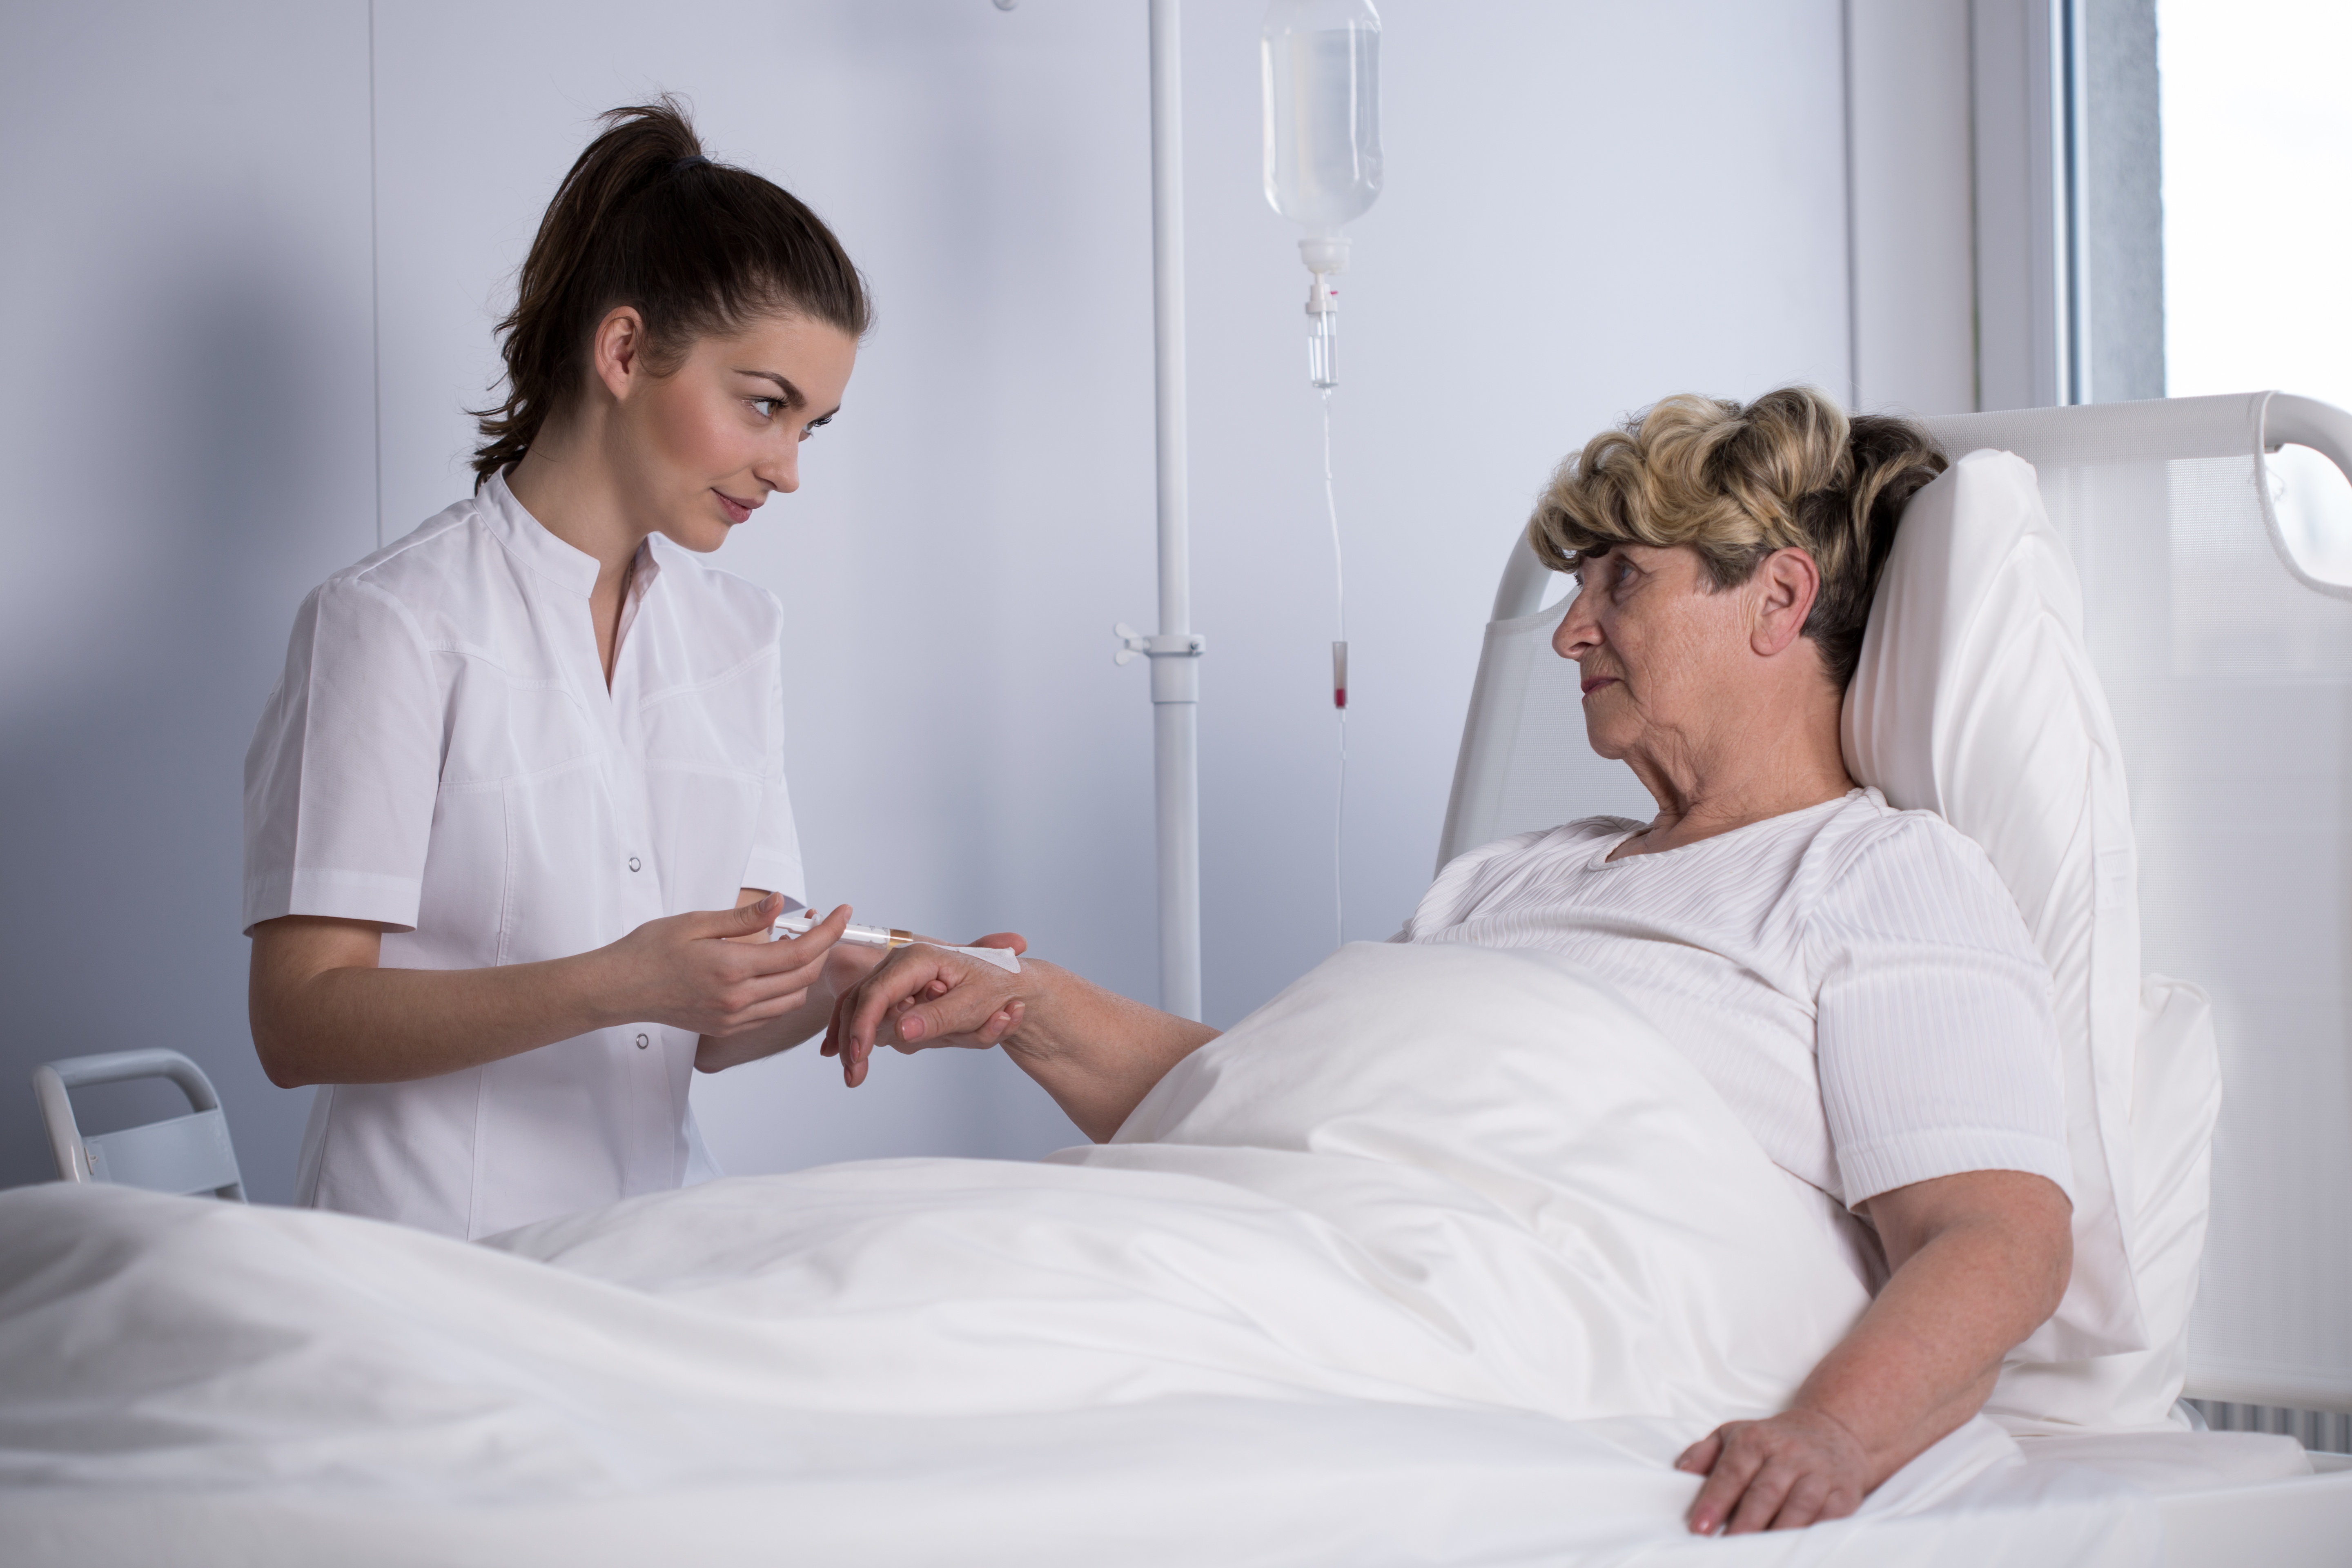 Teaching Patient Empowerment in Simulation